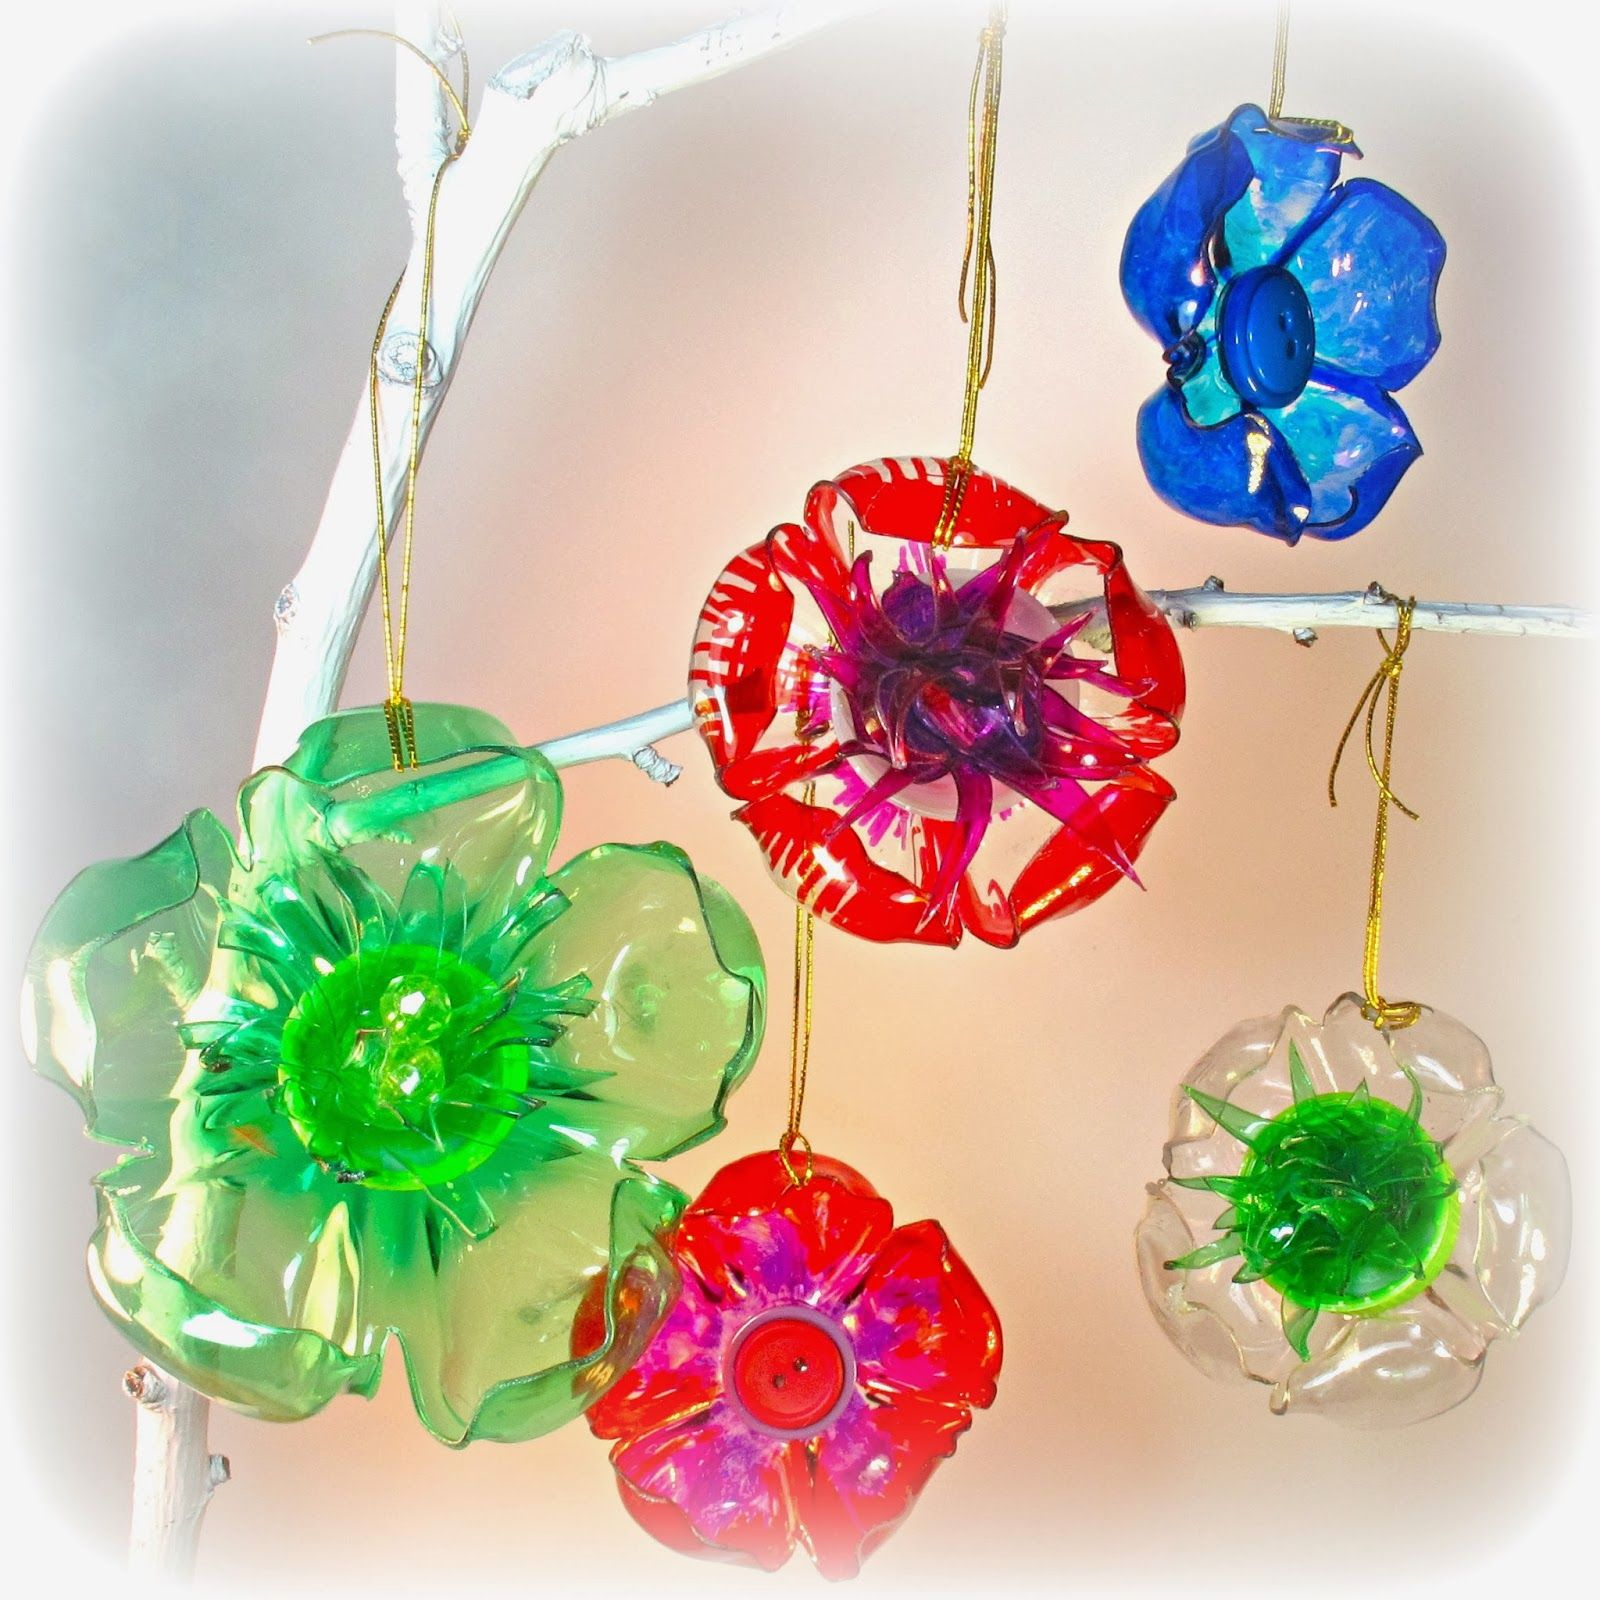 How to make a christmas decoration using recycled materials - How To Make A Recycled Christmas Decoration Plastic Soda Bottle Projects Ornaments Make Flowers Or Download